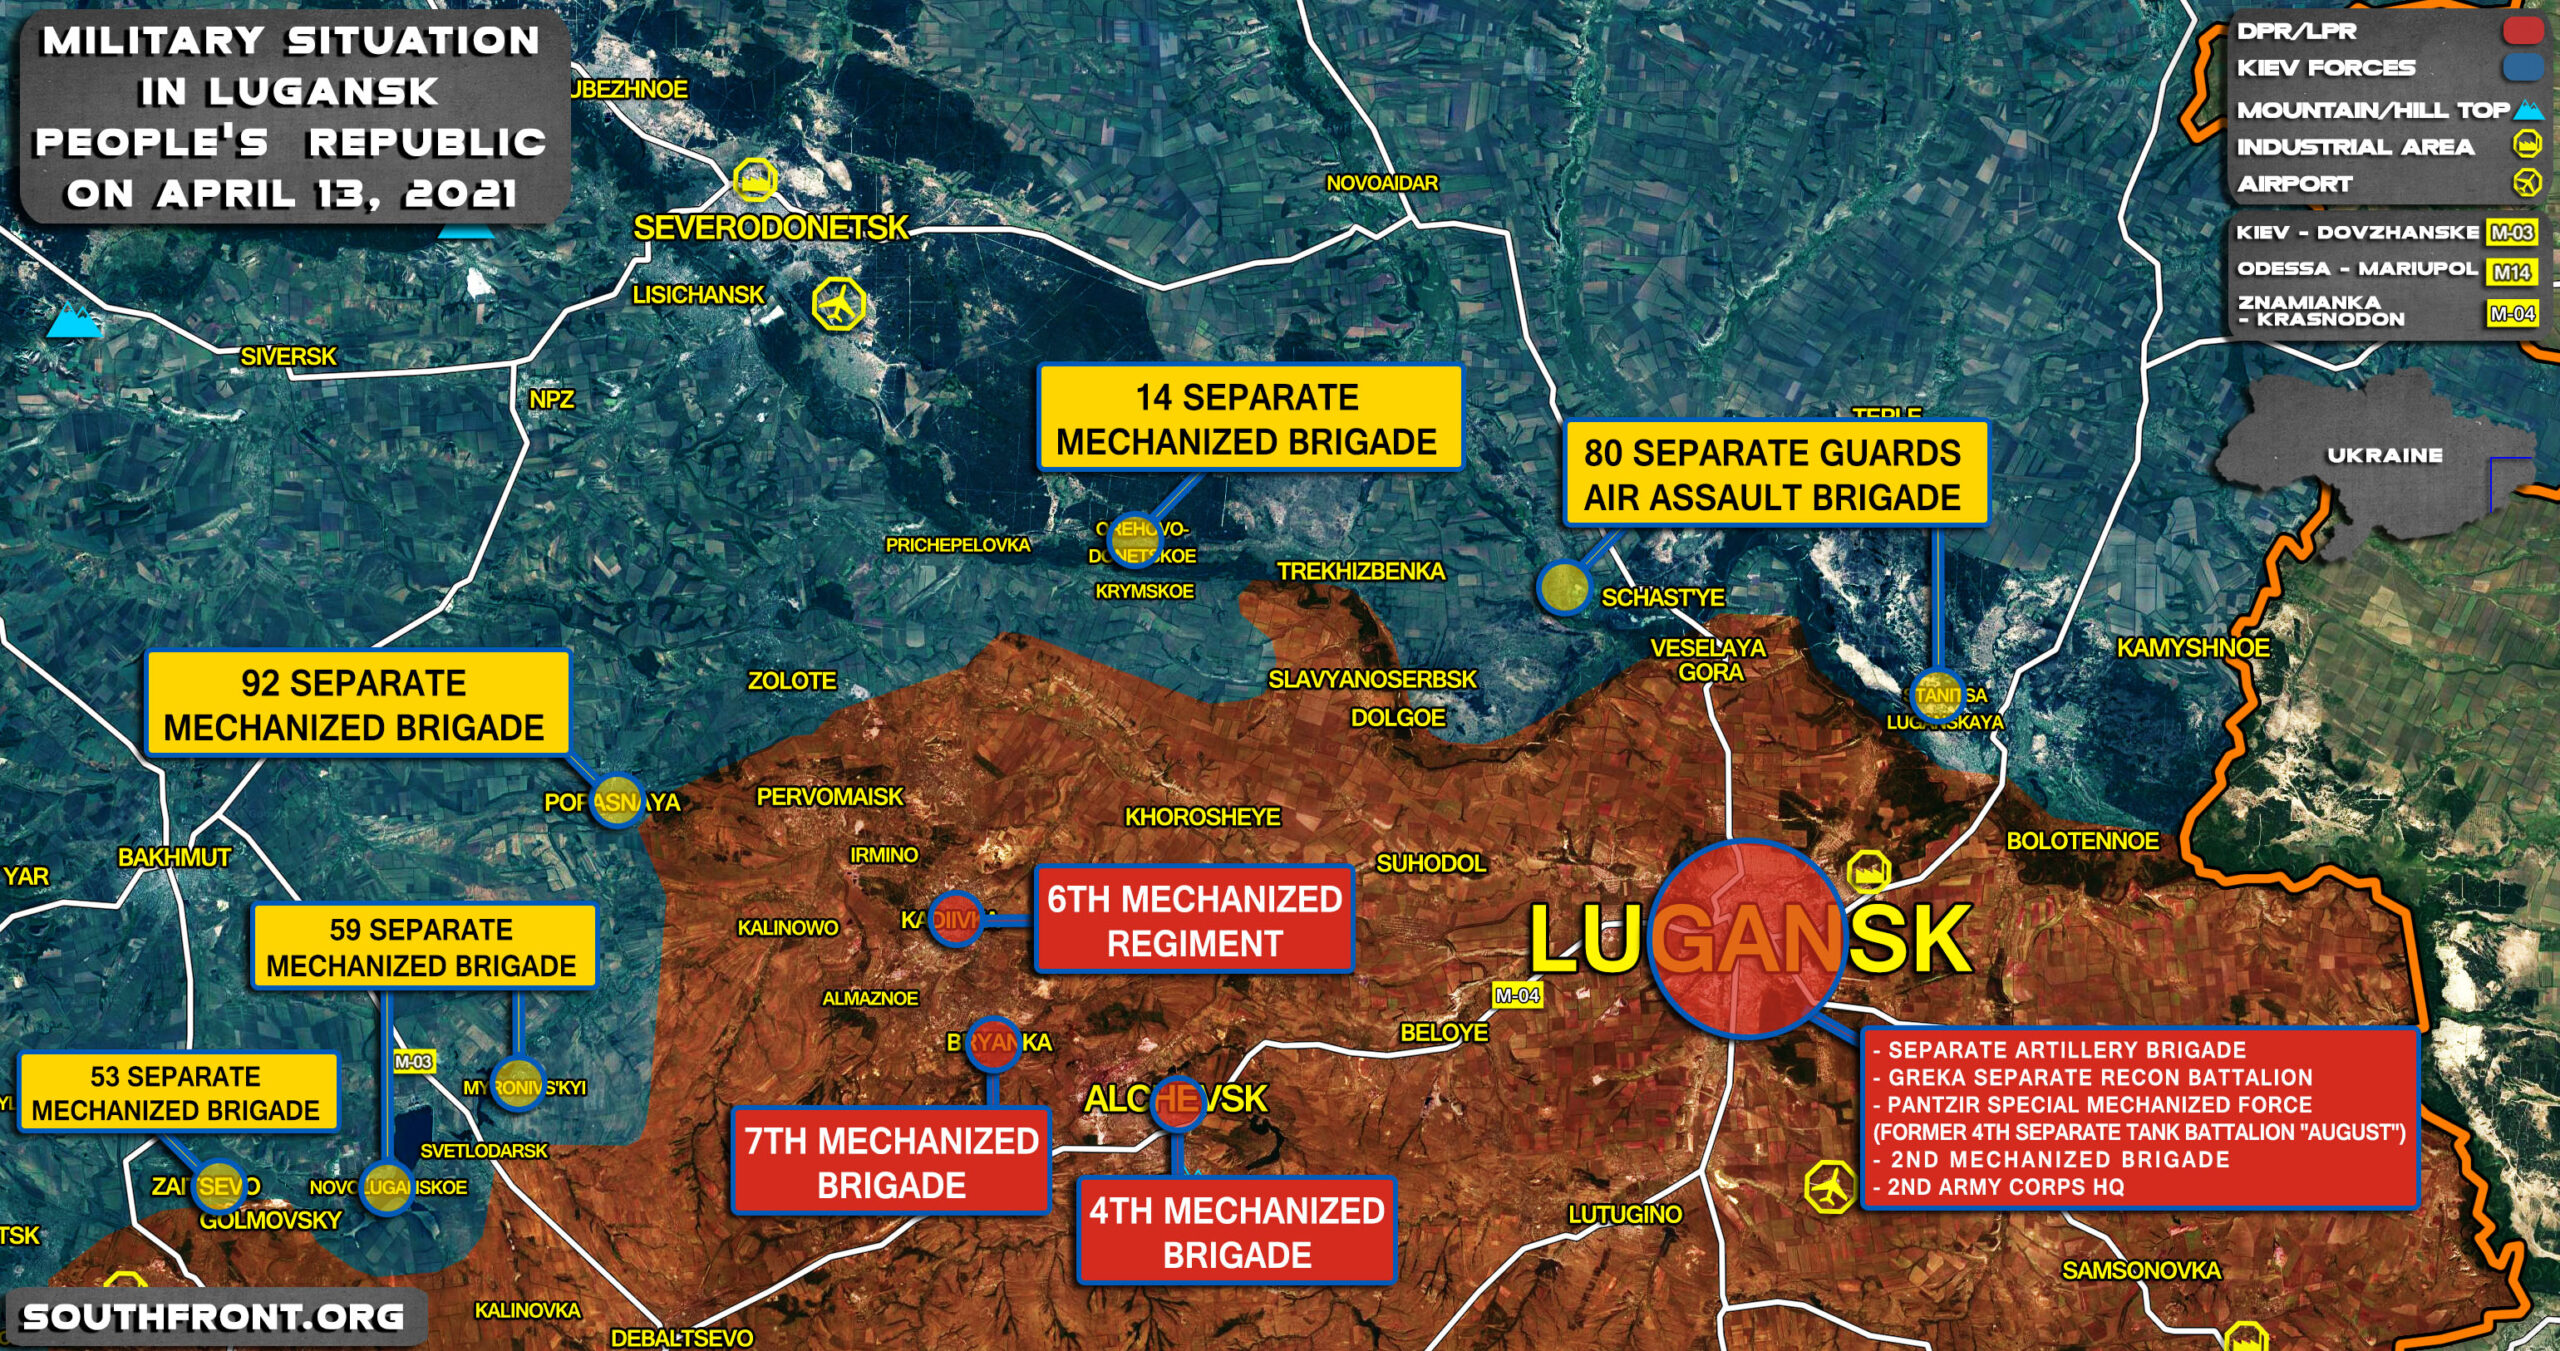 Positions Of Forces Around And In Lugansk People's Republic In Eastern Ukraine (Map Update)